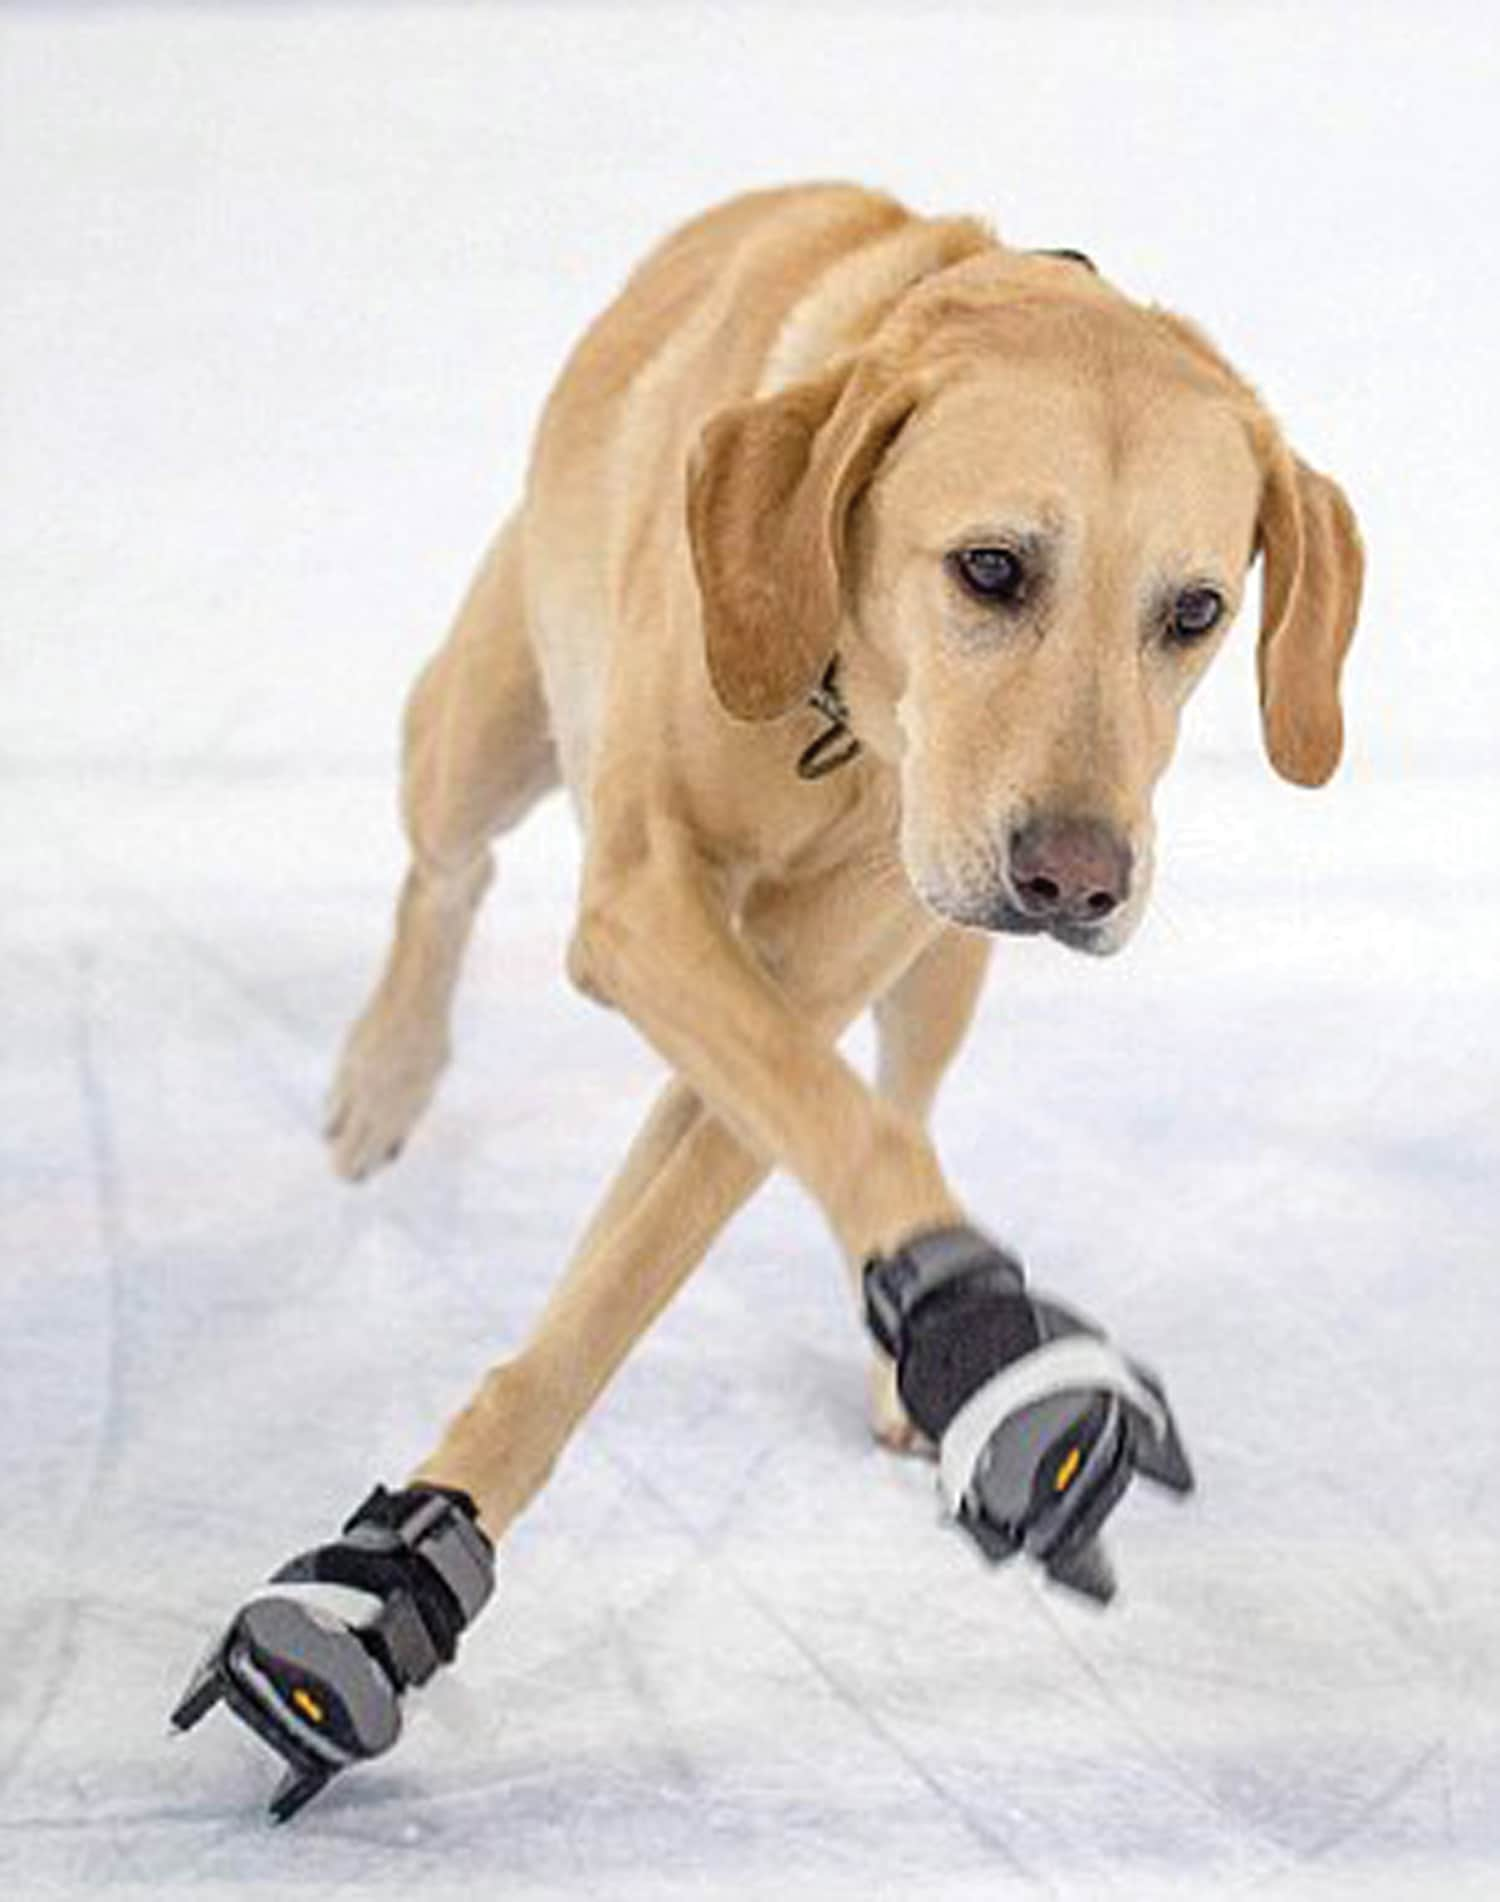 Dog dancing on ice:  The world's first ice skating dog!